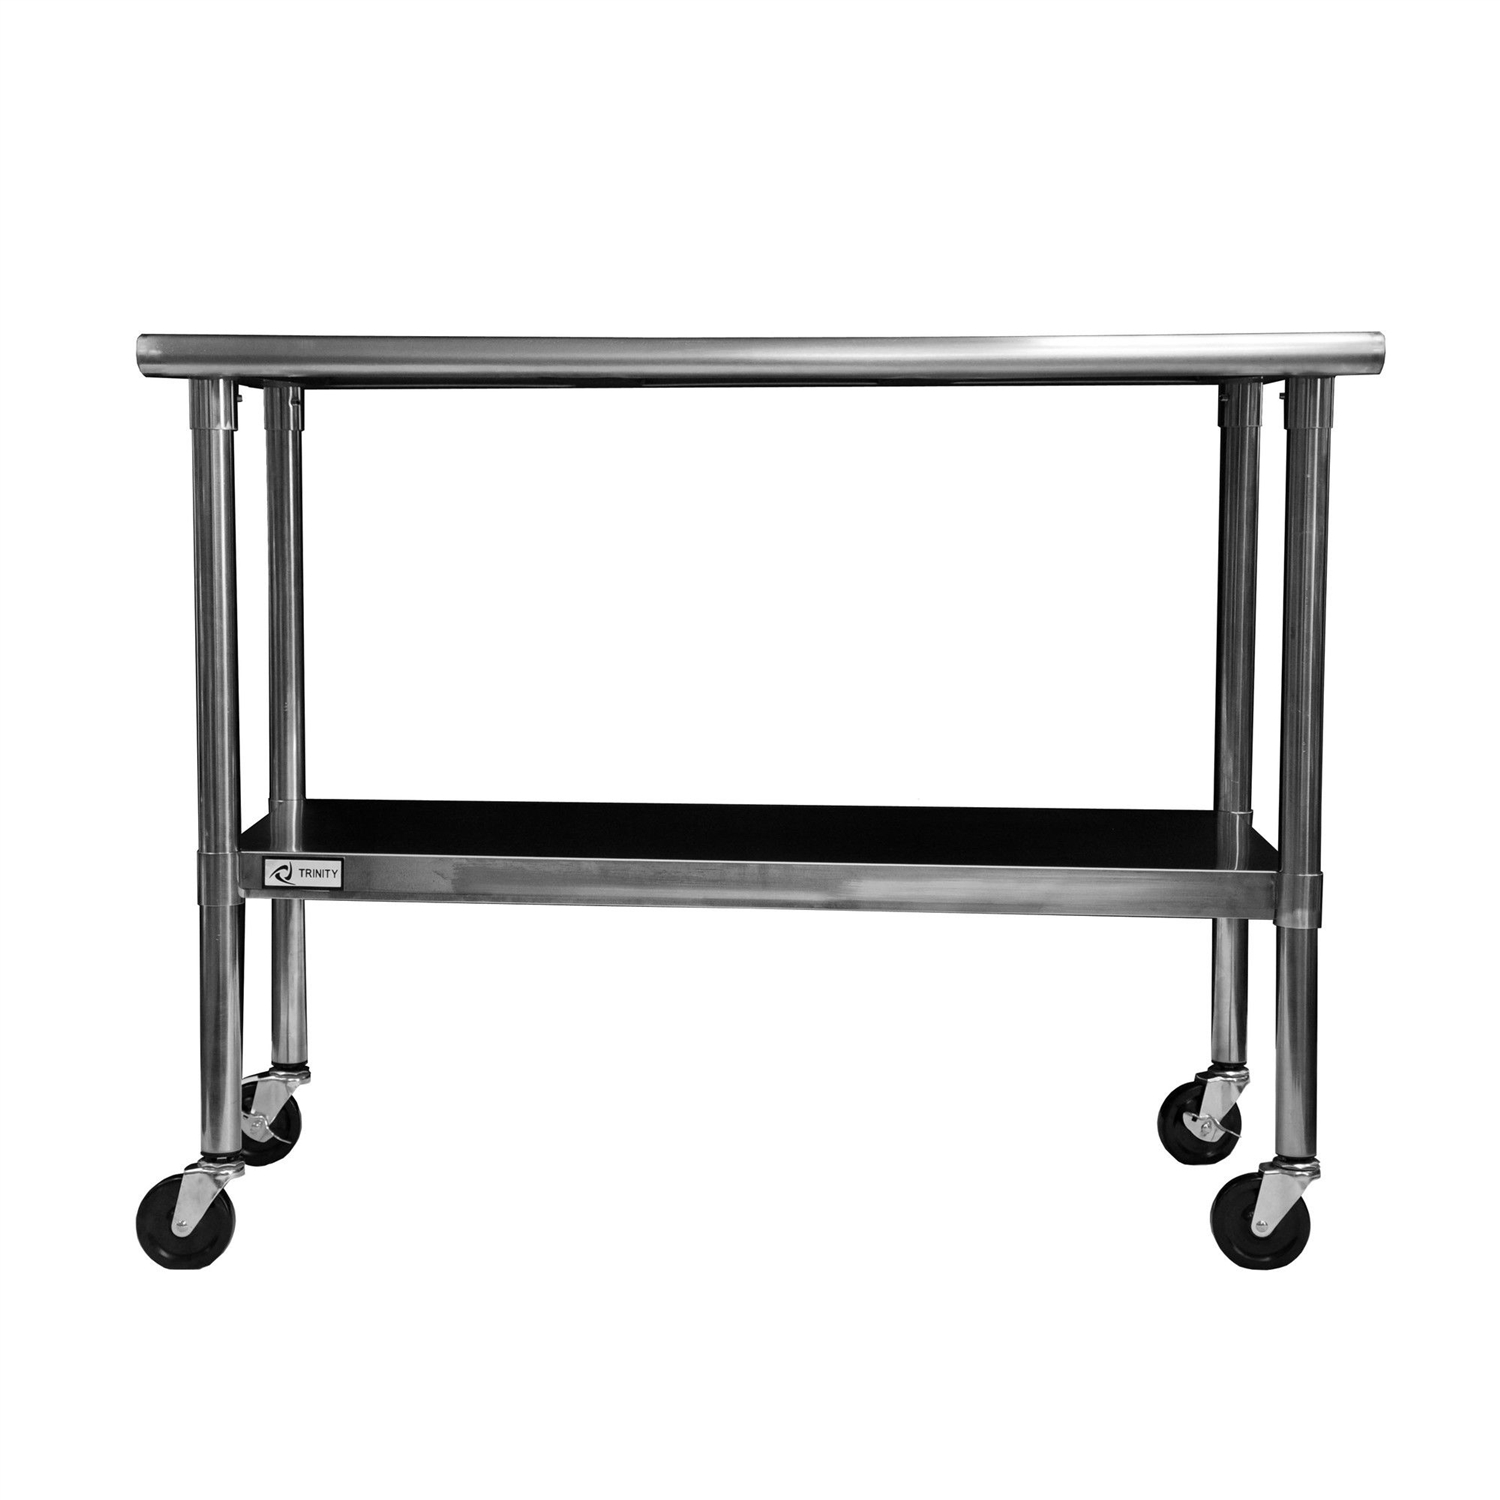 Stainless steel kitchen table top - 2ft X 4ft Stainless Steel Top Kitchen Prep Table With Locking